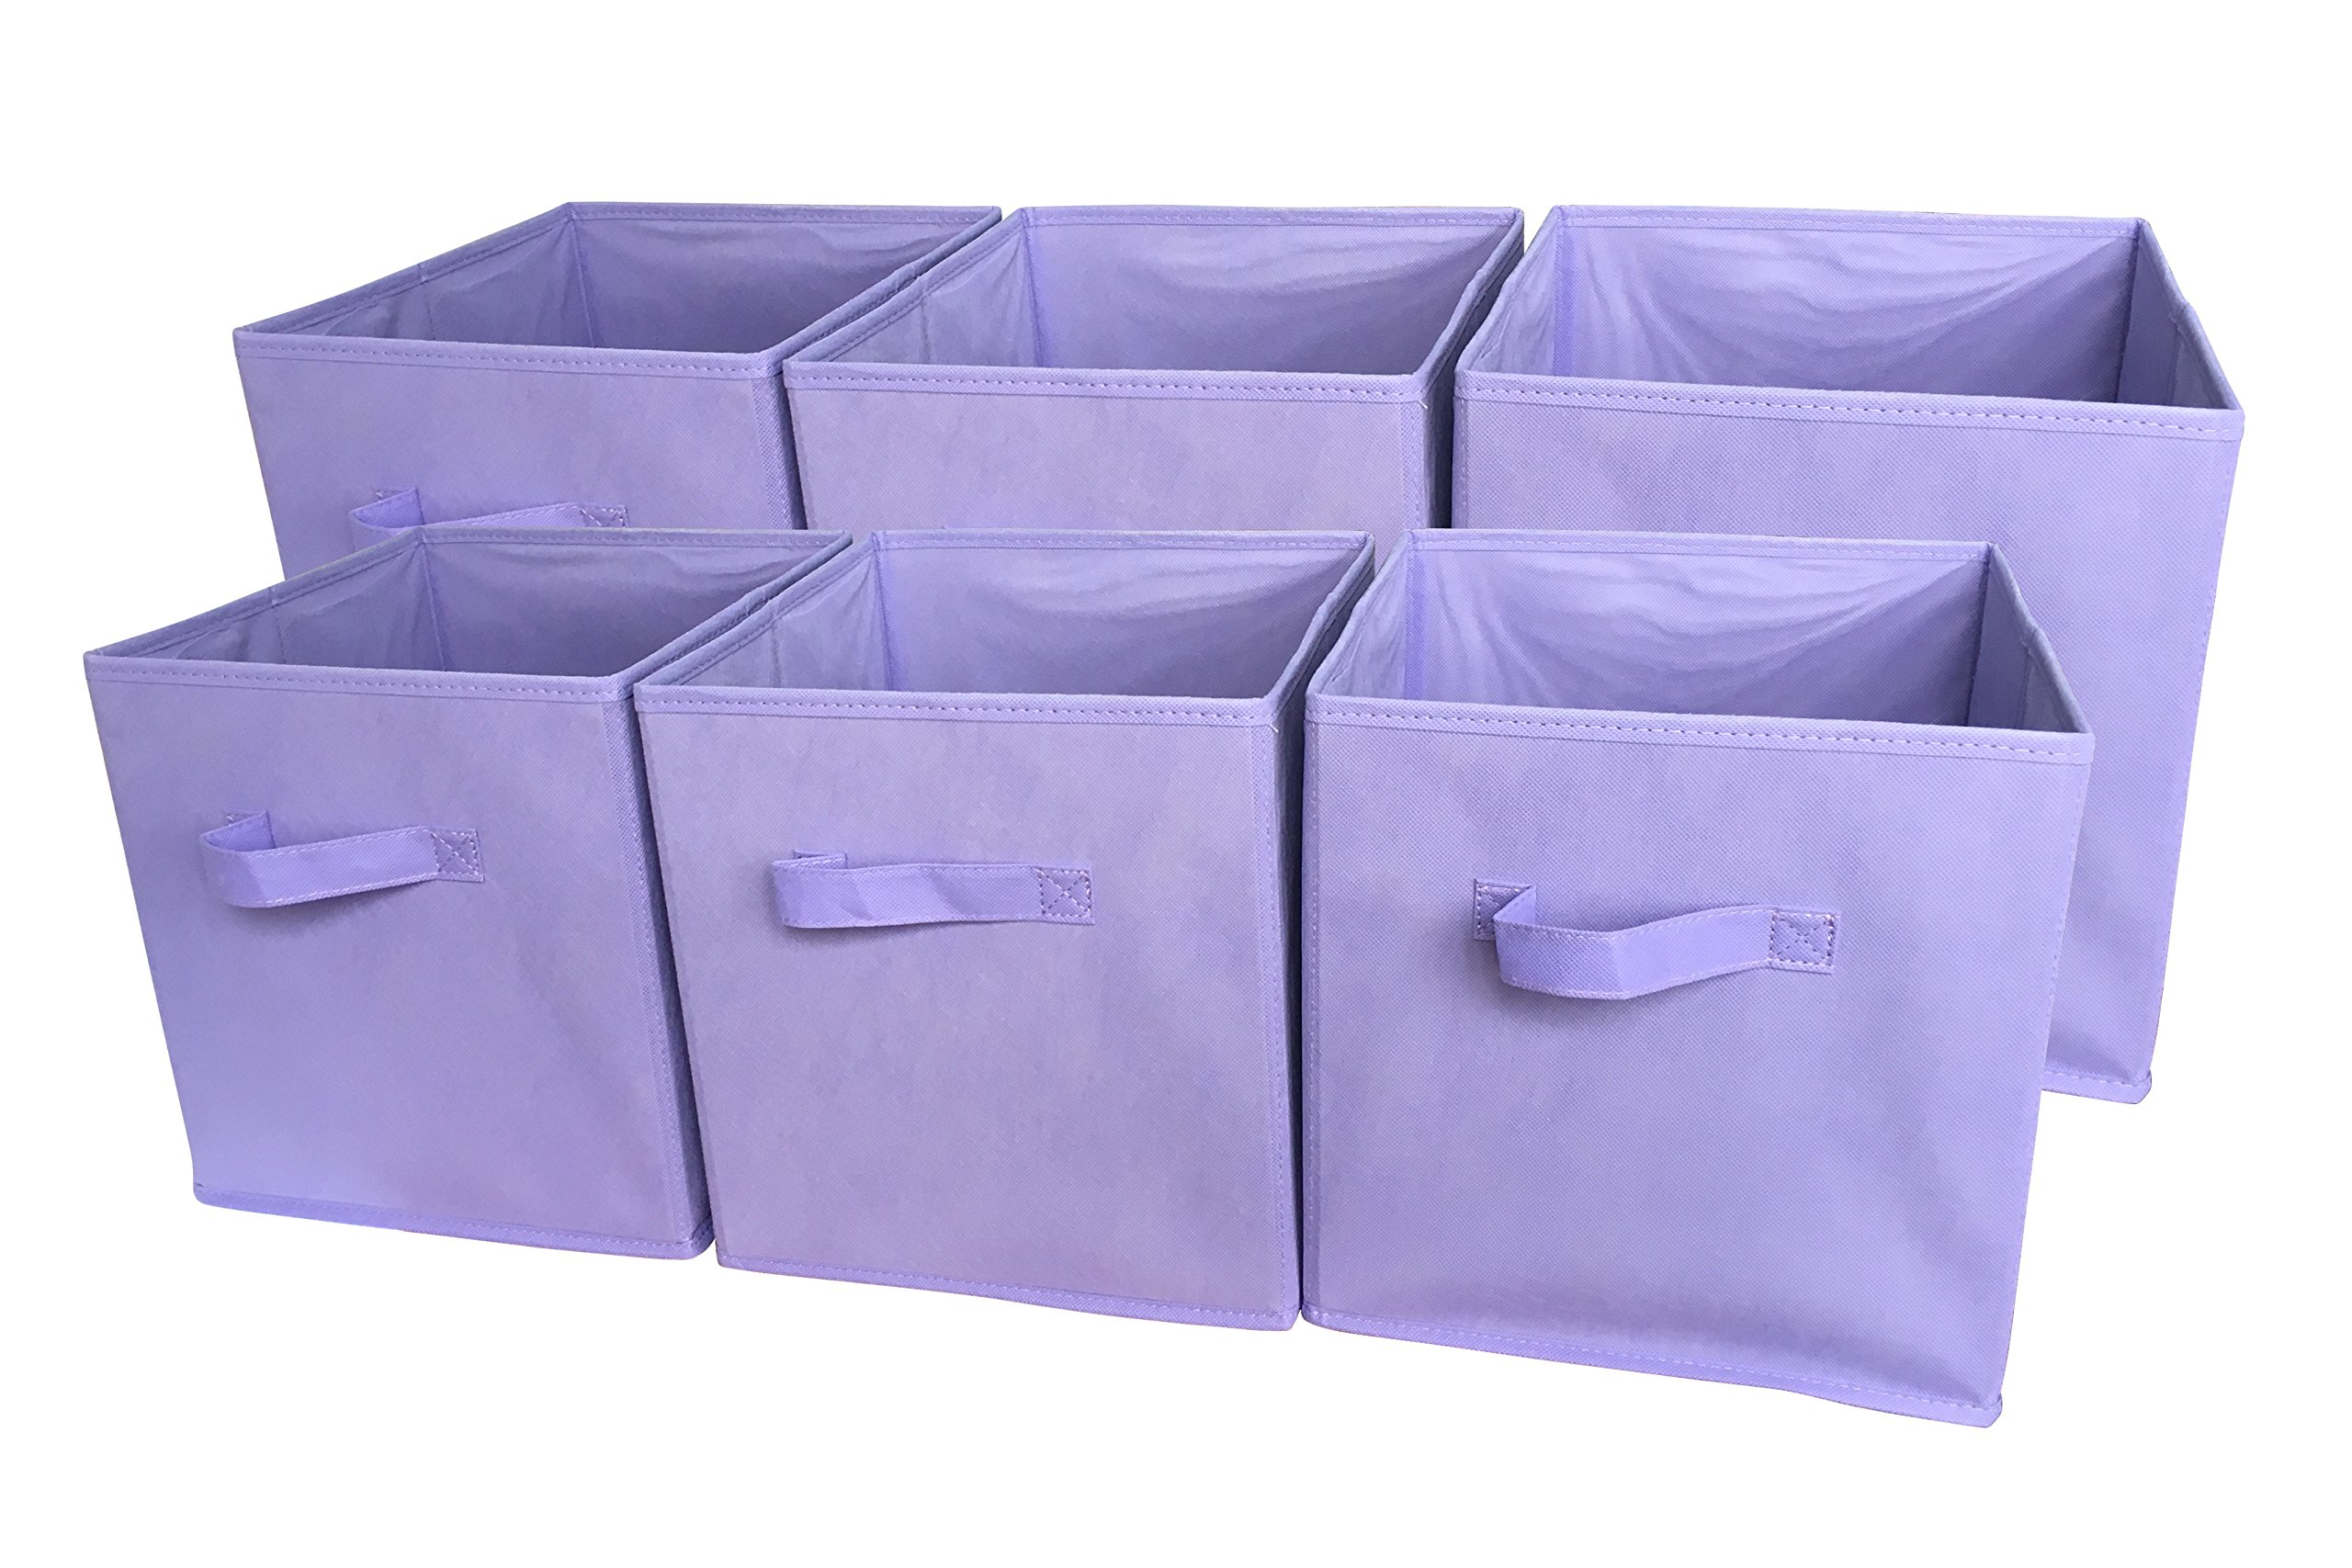 foldable cloth storage cube basket bins organizer containers drawers home 6 pack ebay. Black Bedroom Furniture Sets. Home Design Ideas